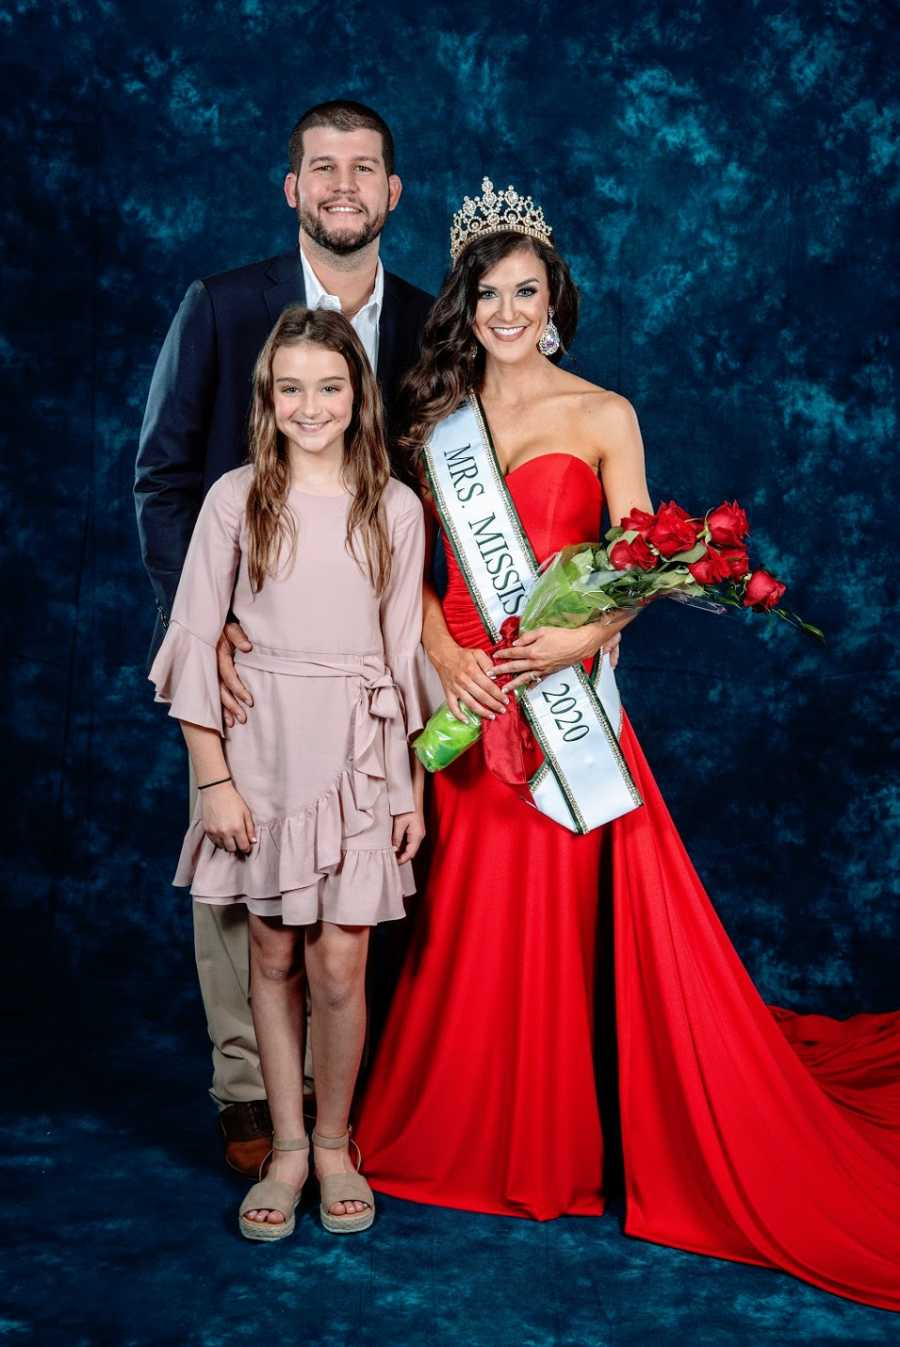 Pageant winner with daughter and husband